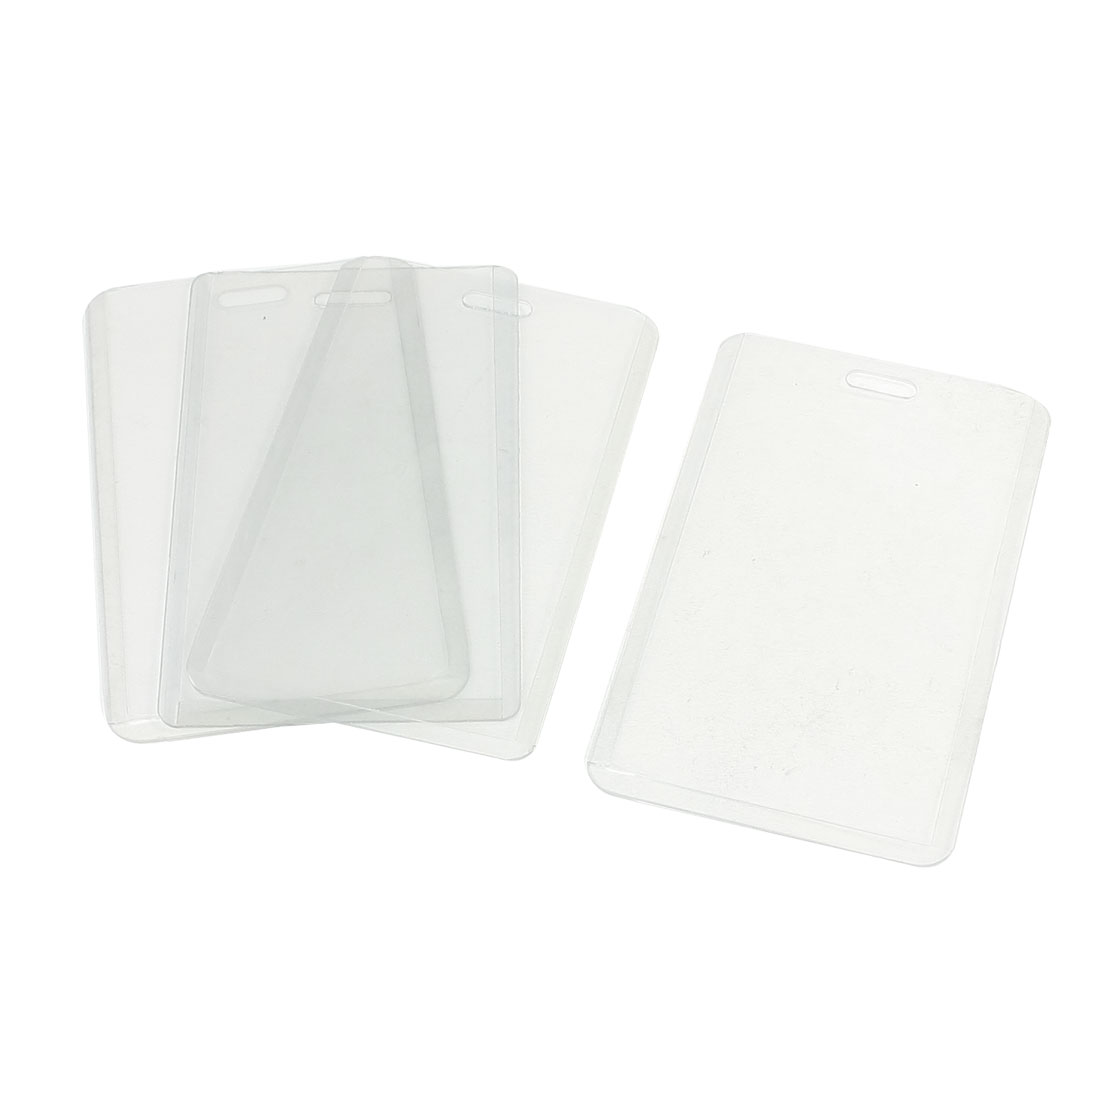 Soft Plastic Working Vertical ID Badge Card Holders Clear 4 Pieces